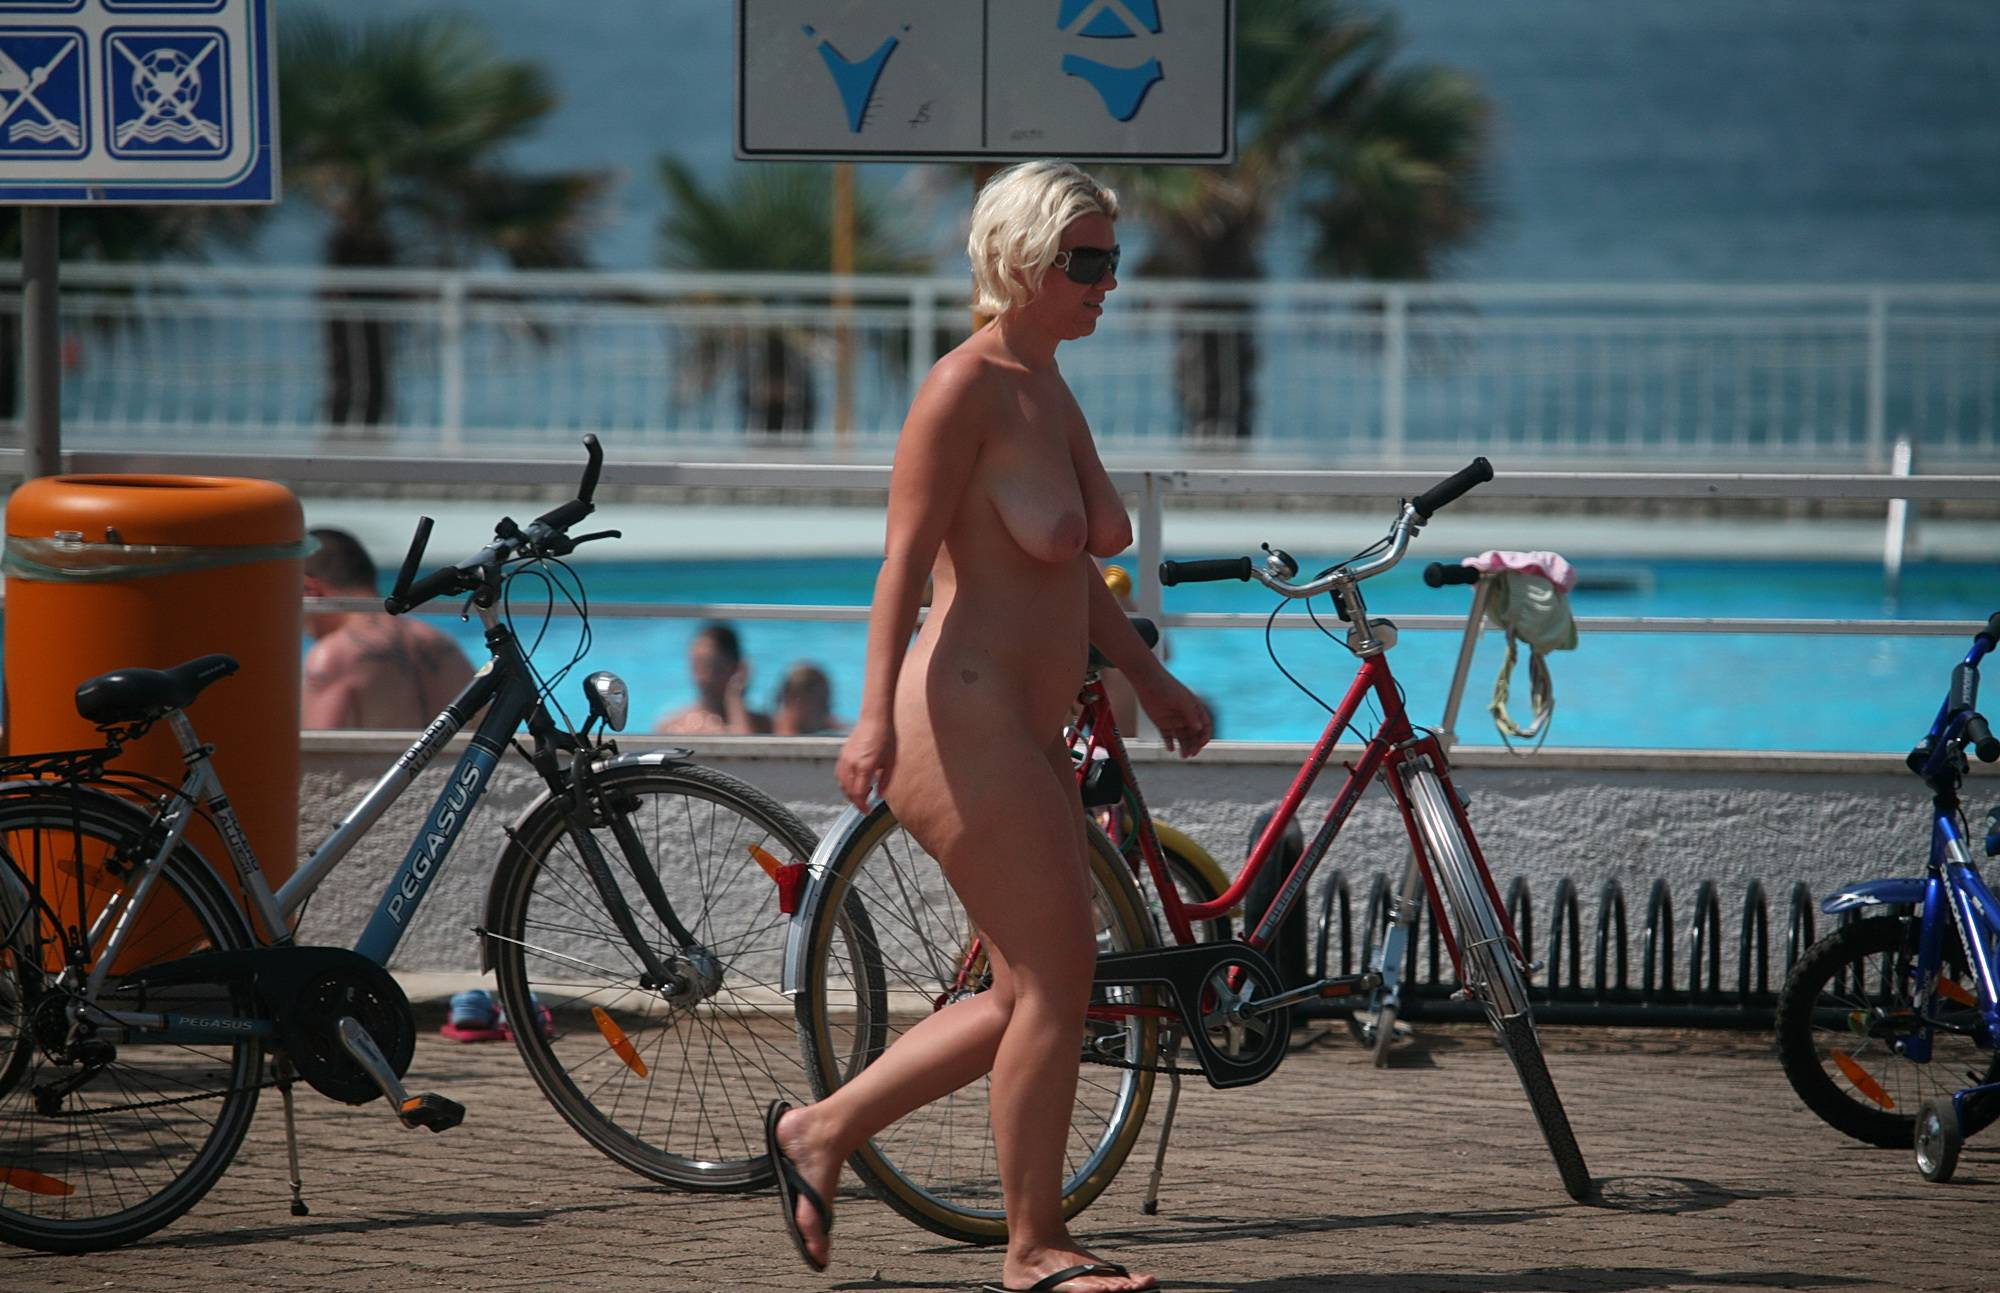 Naturist Toddler Day Out - 1